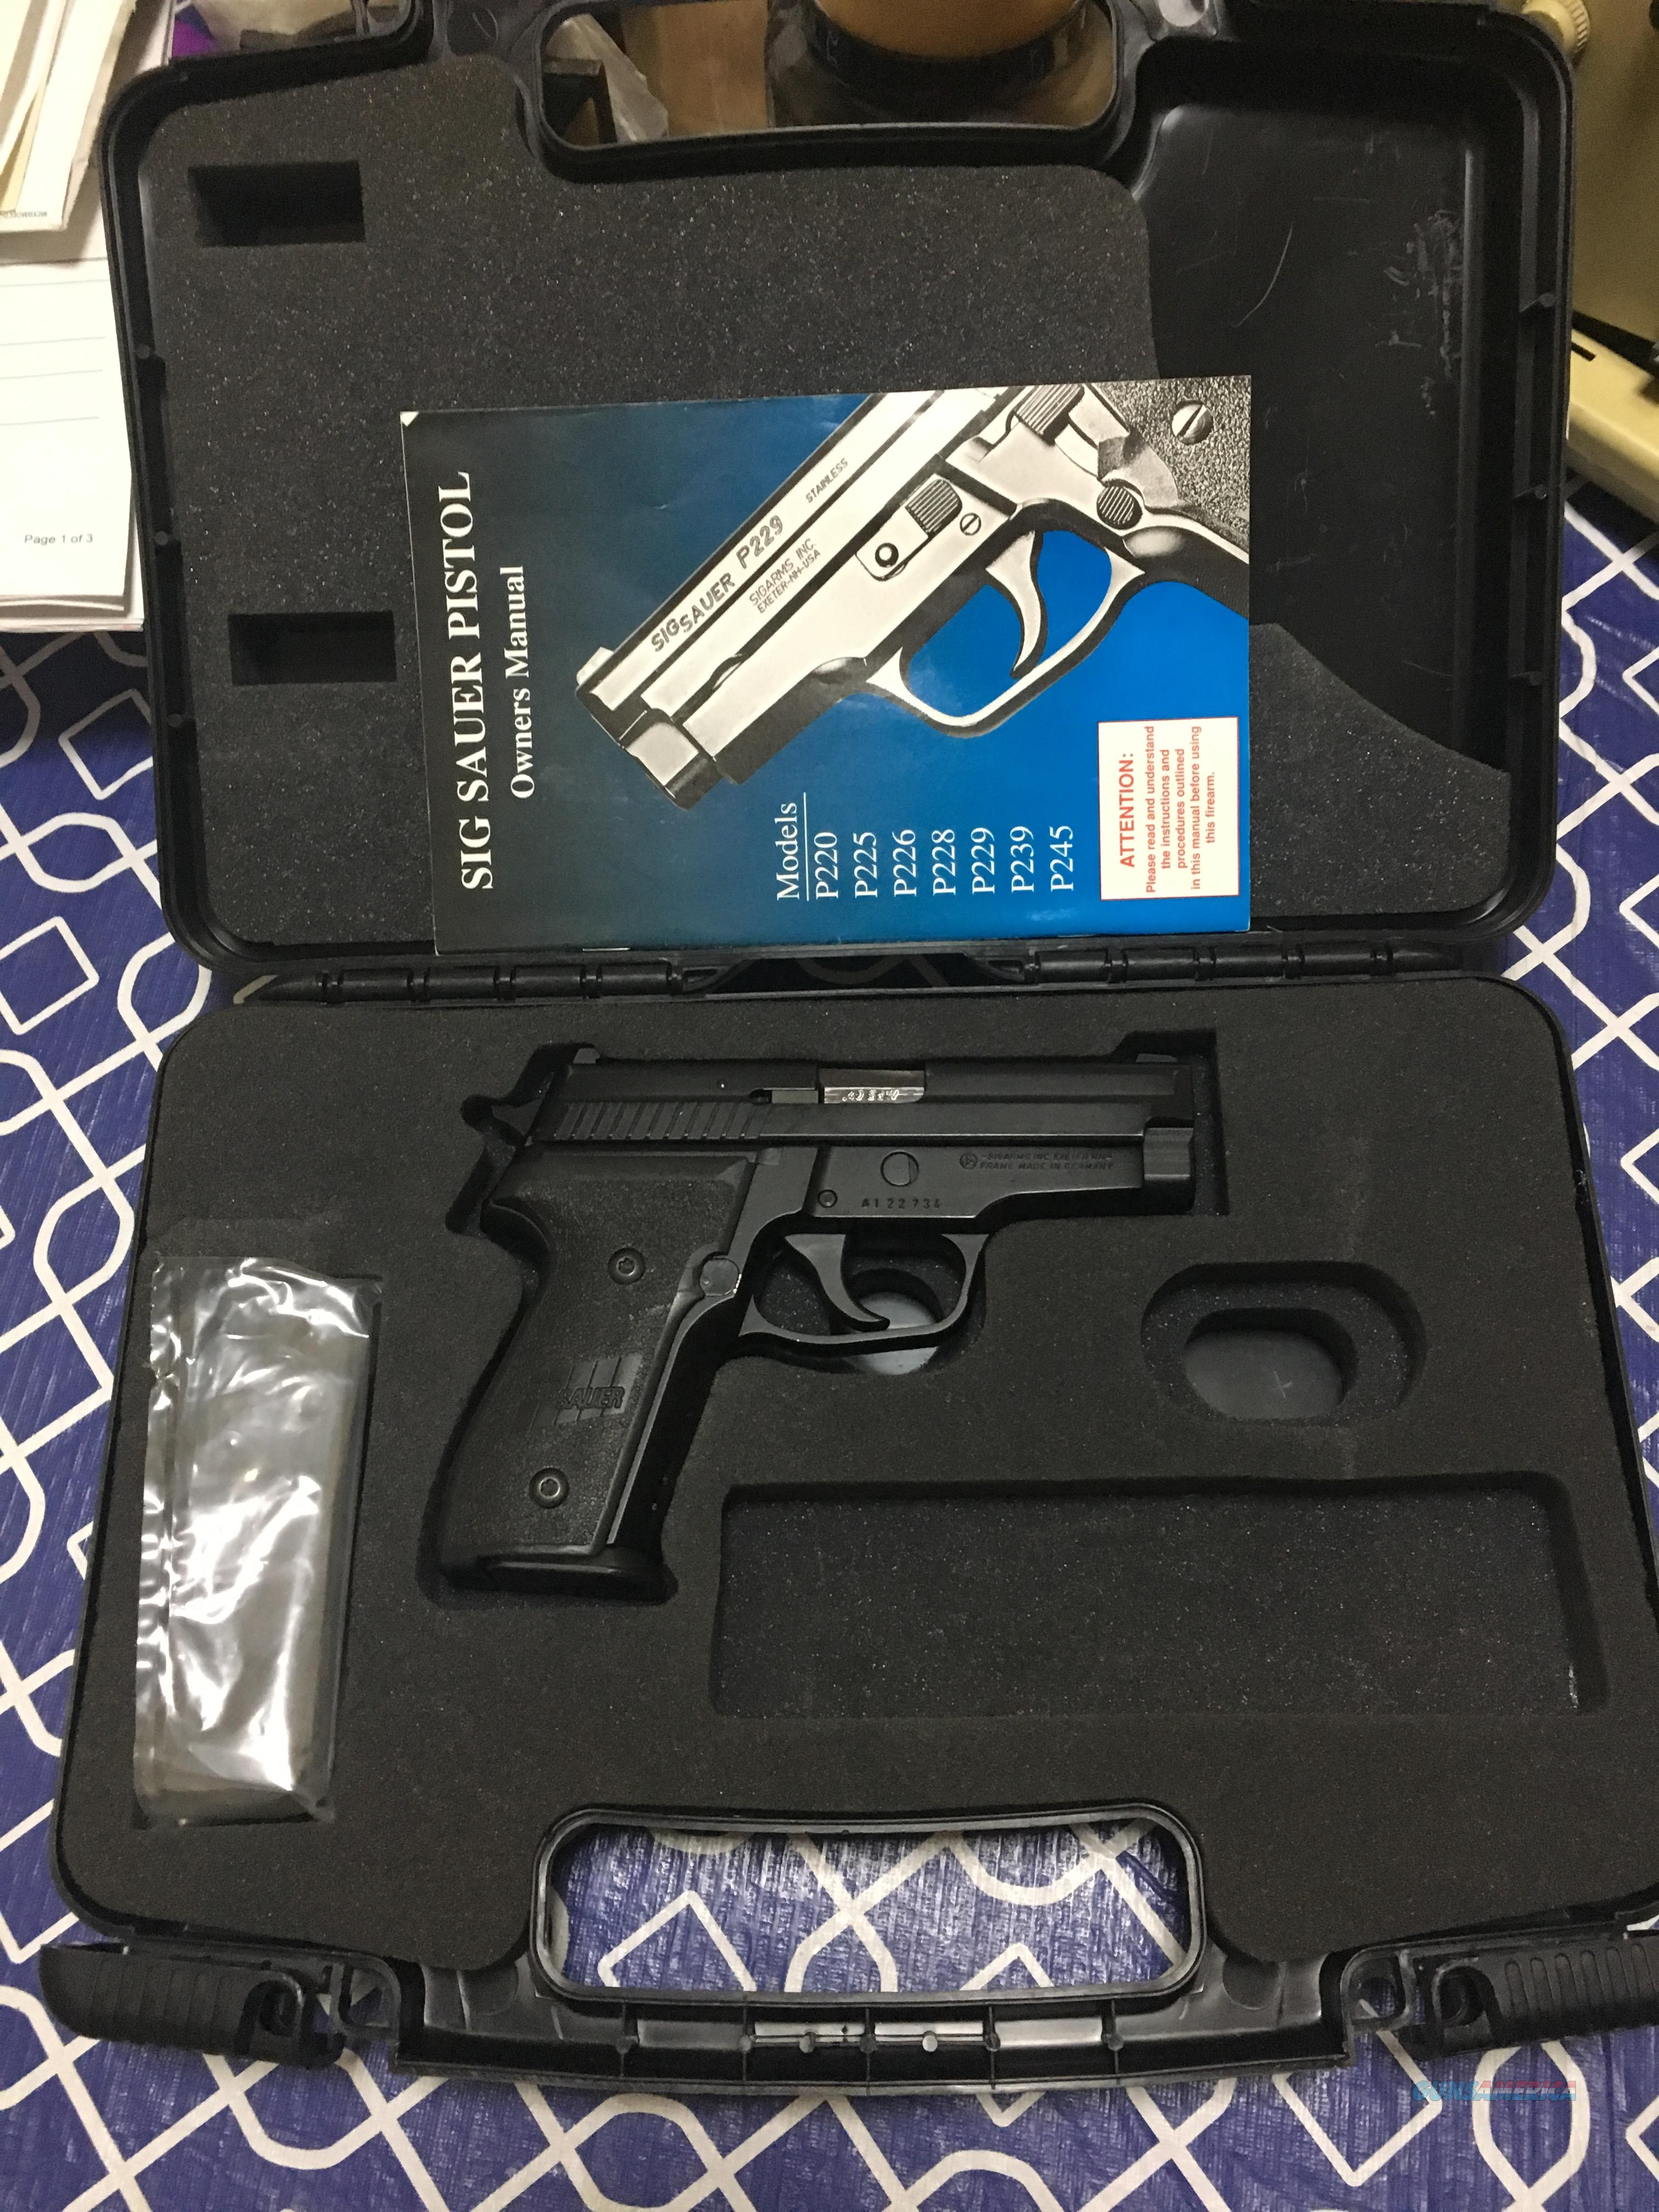 sig p229 owners manual best setting instruction guide u2022 rh ourk9 co sig sauer owners manual sig sauer instruction manual